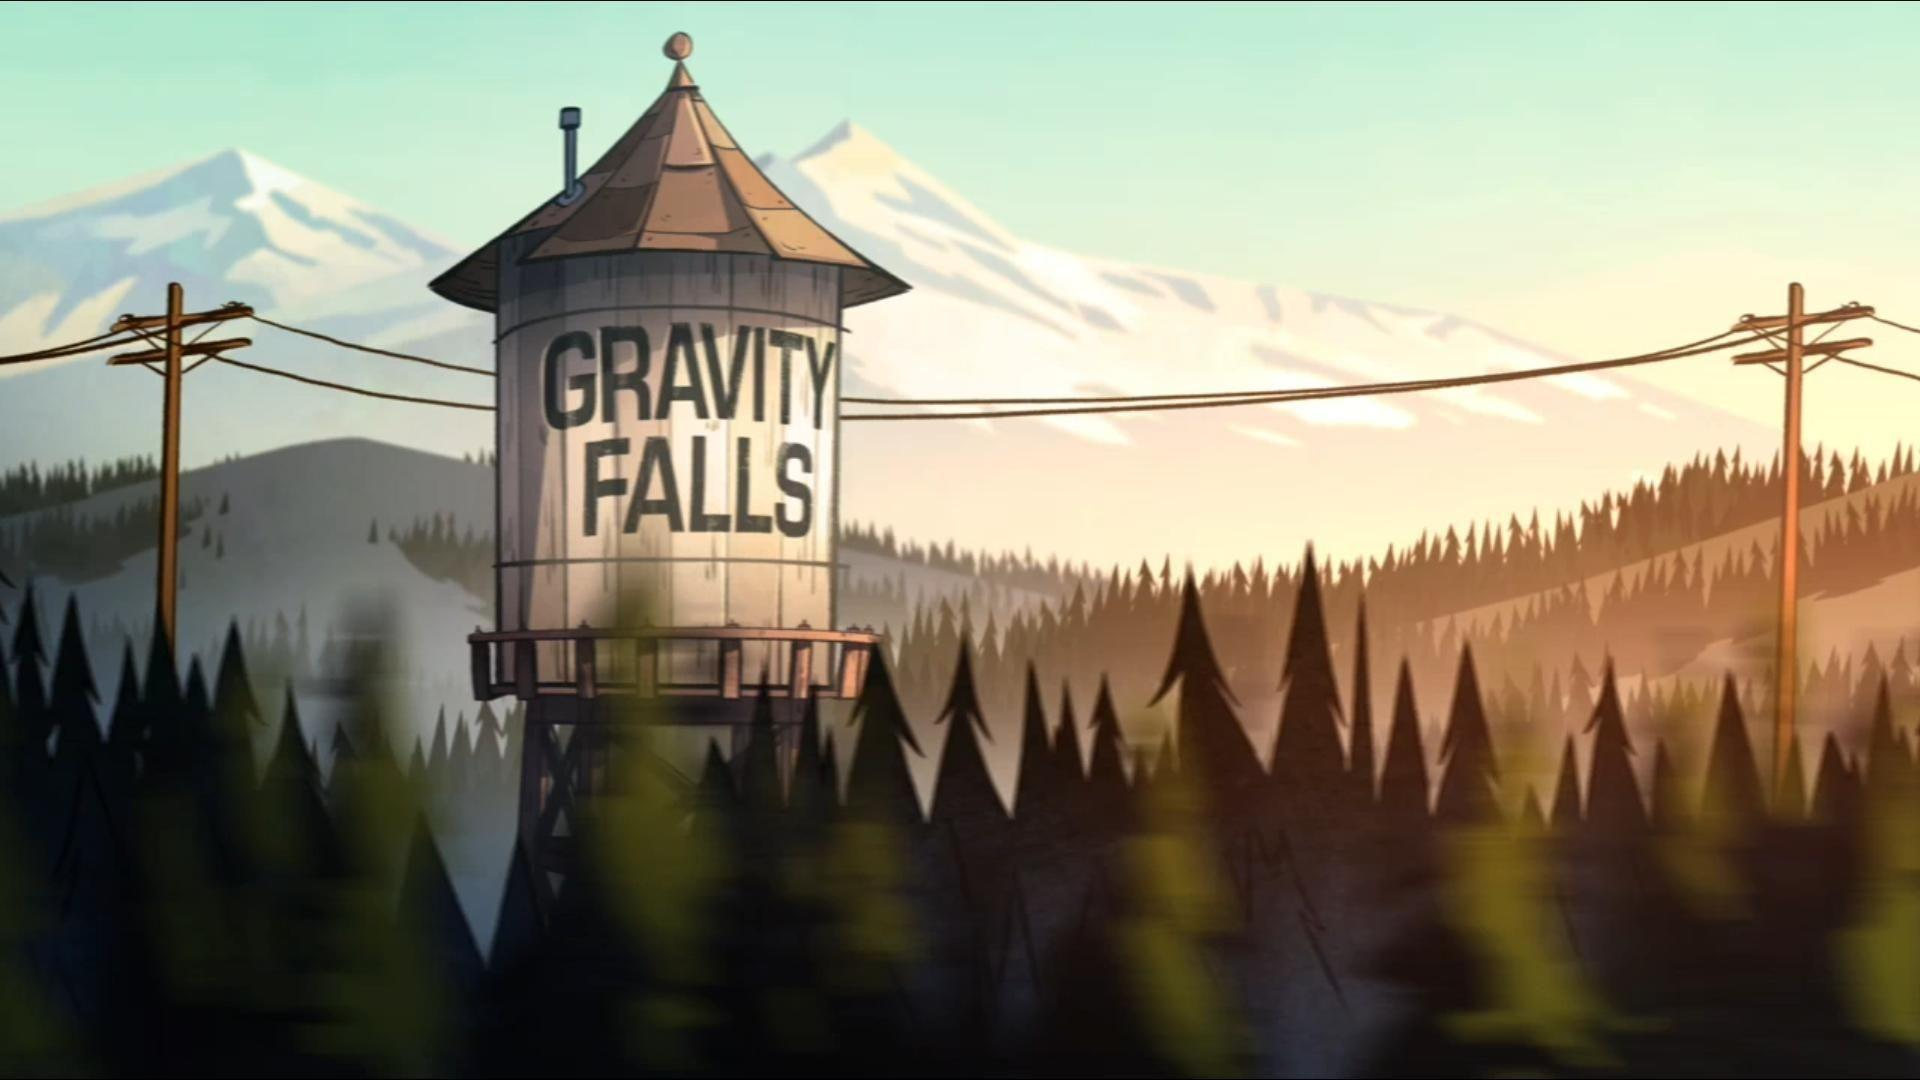 Gravity Falls Wallpaper Celular Hd Gravity Falls Wallpapers Wallpaper Cave